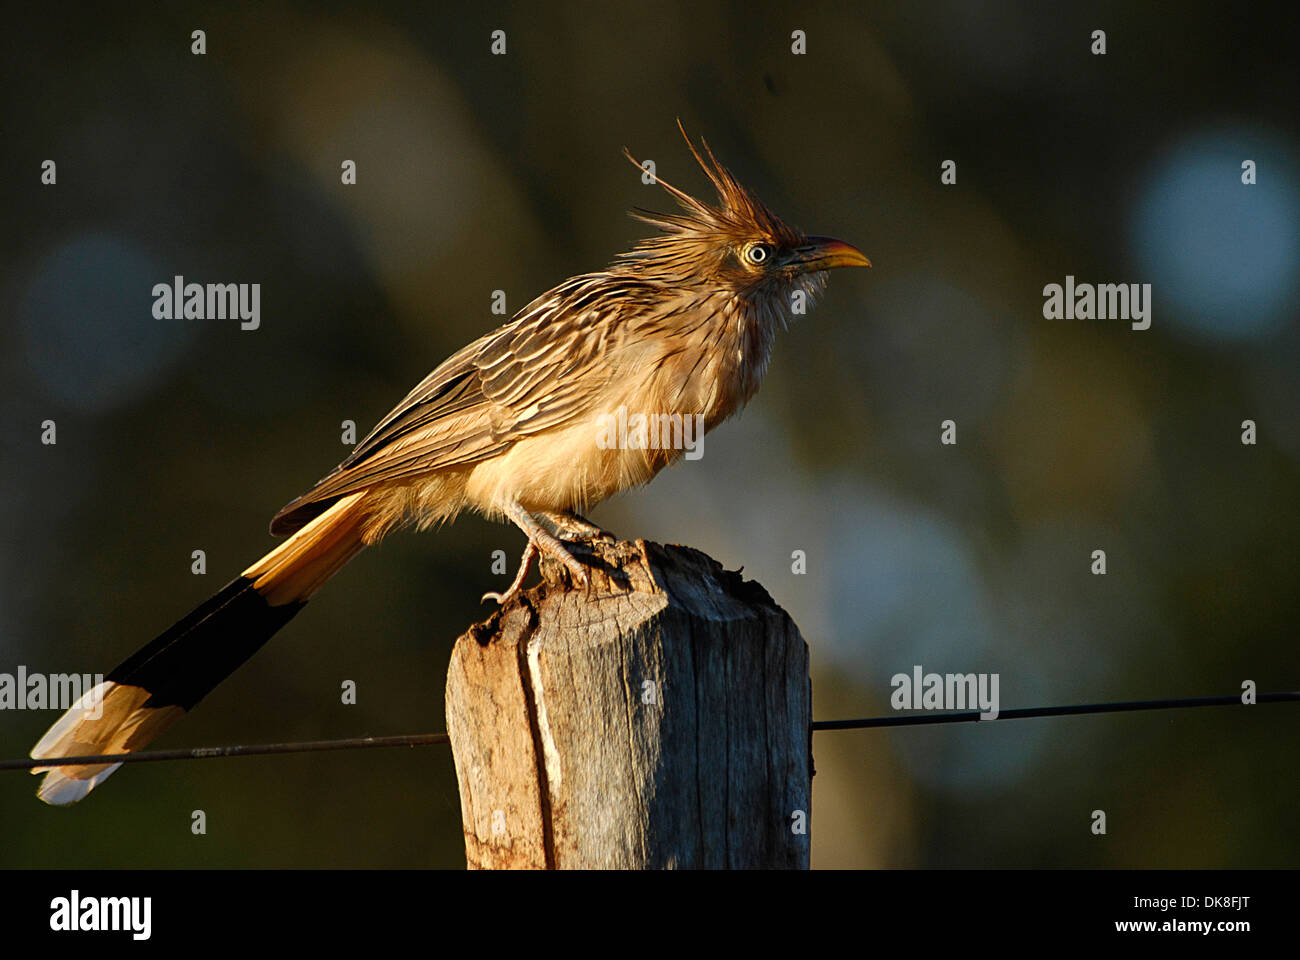 The Guira Cuckoo ( Guira guira ) non-parasitic cuckoo found widely in open and semi-open habitats of eastern and southern Brazil - Stock Image